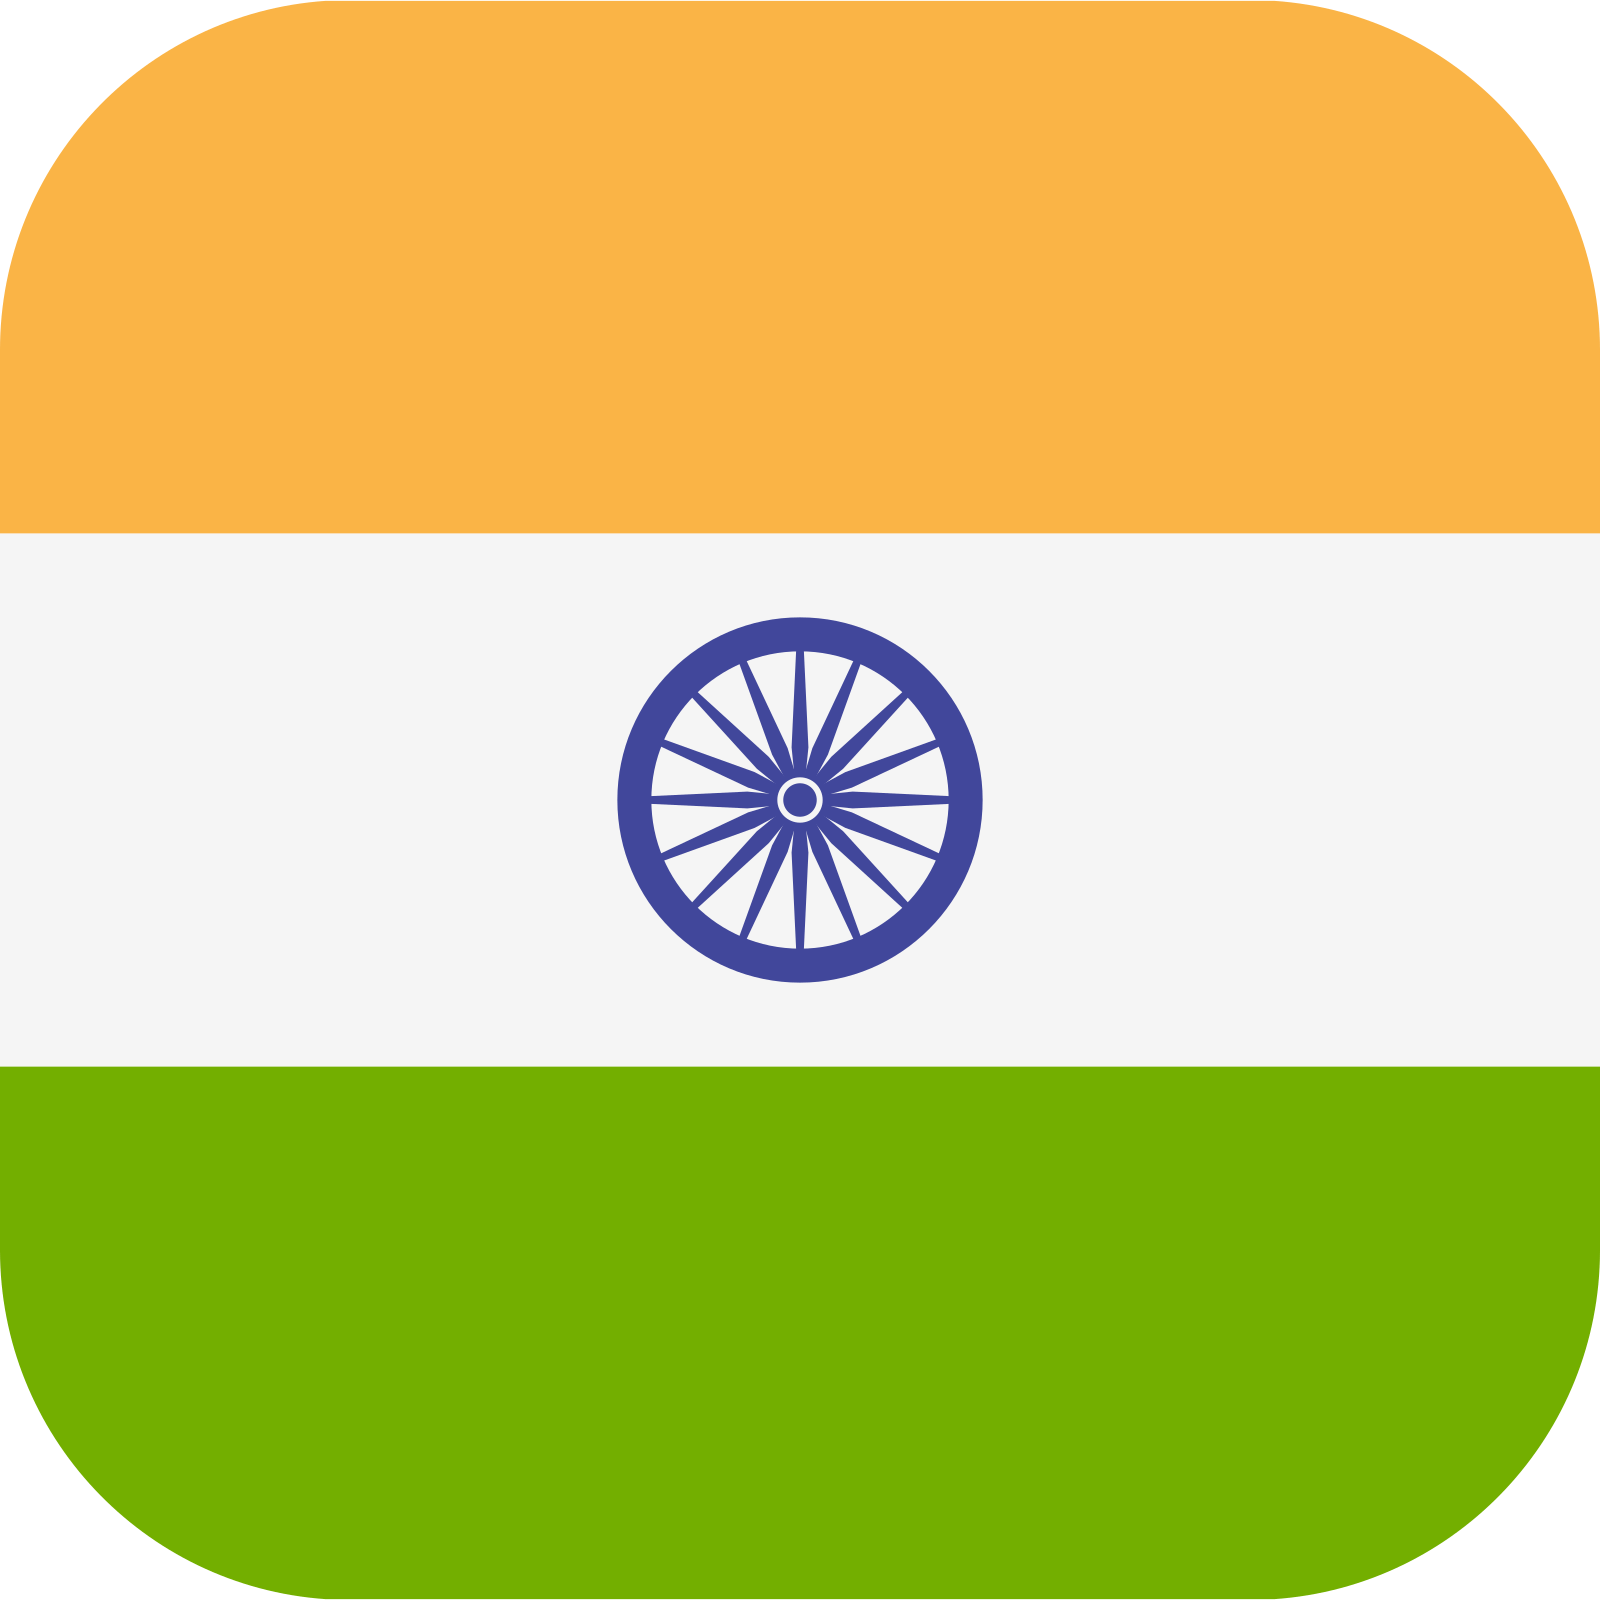 ahmedabad india flag,weisetech developers